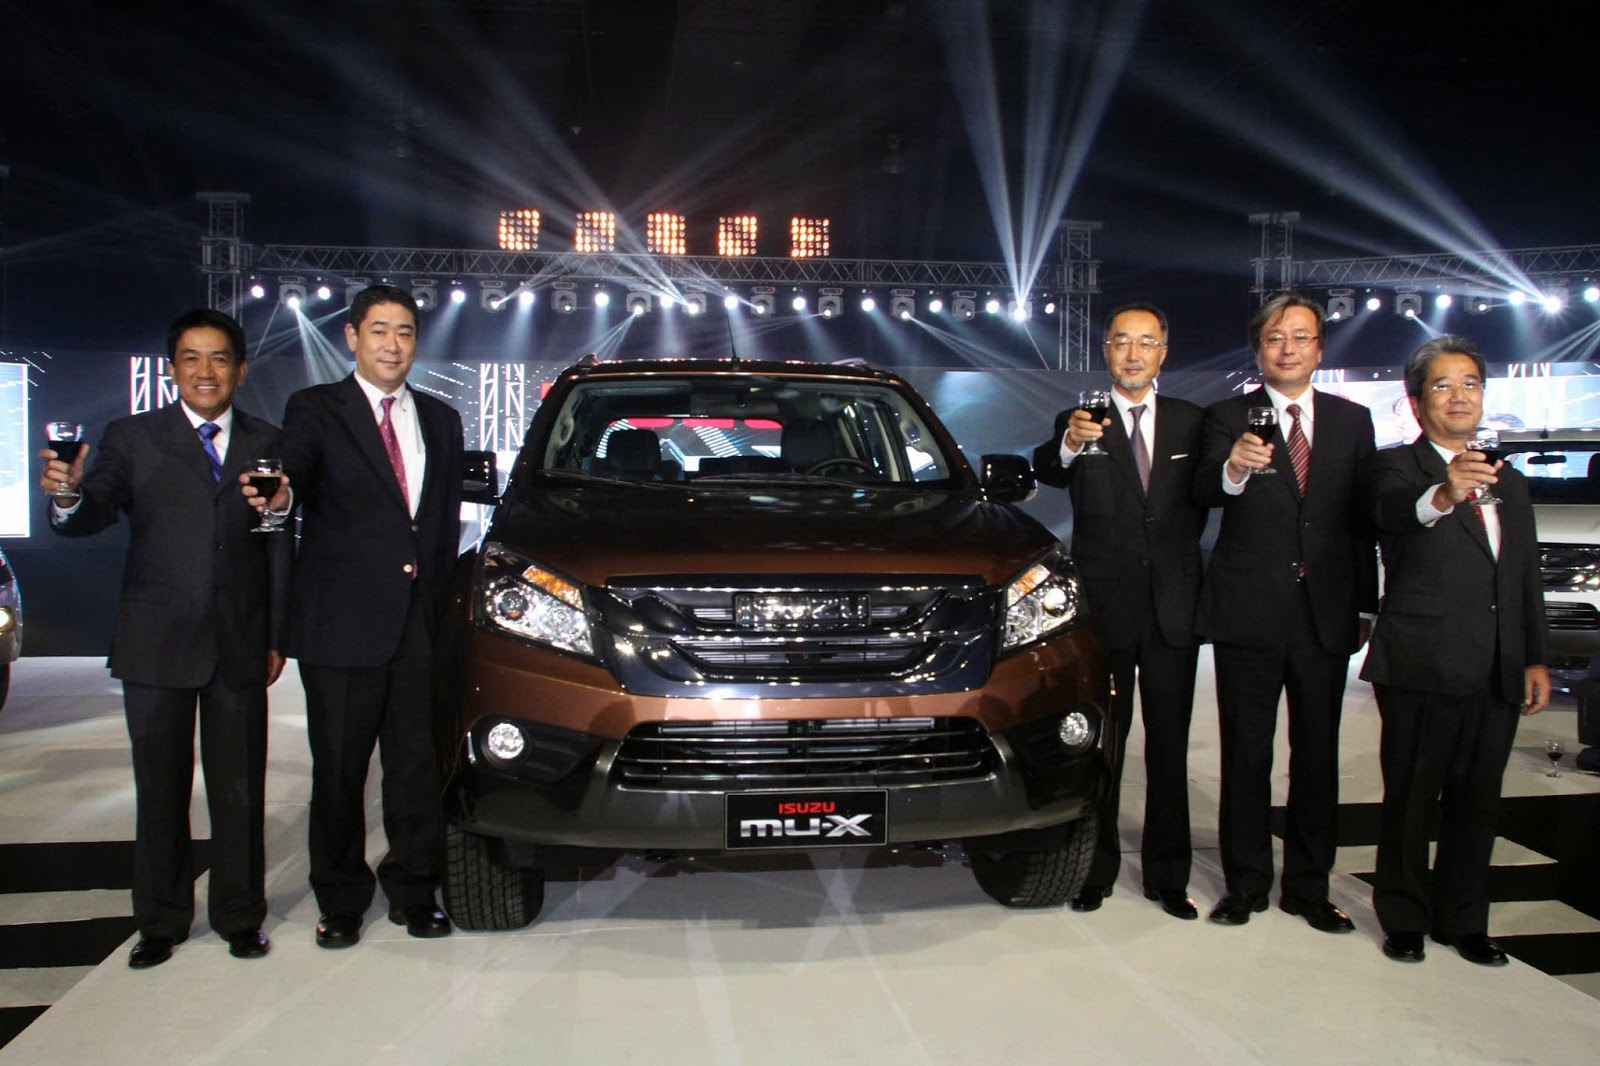 Isuzu Philippines launches the All-New 2014 Isuzu mu-X